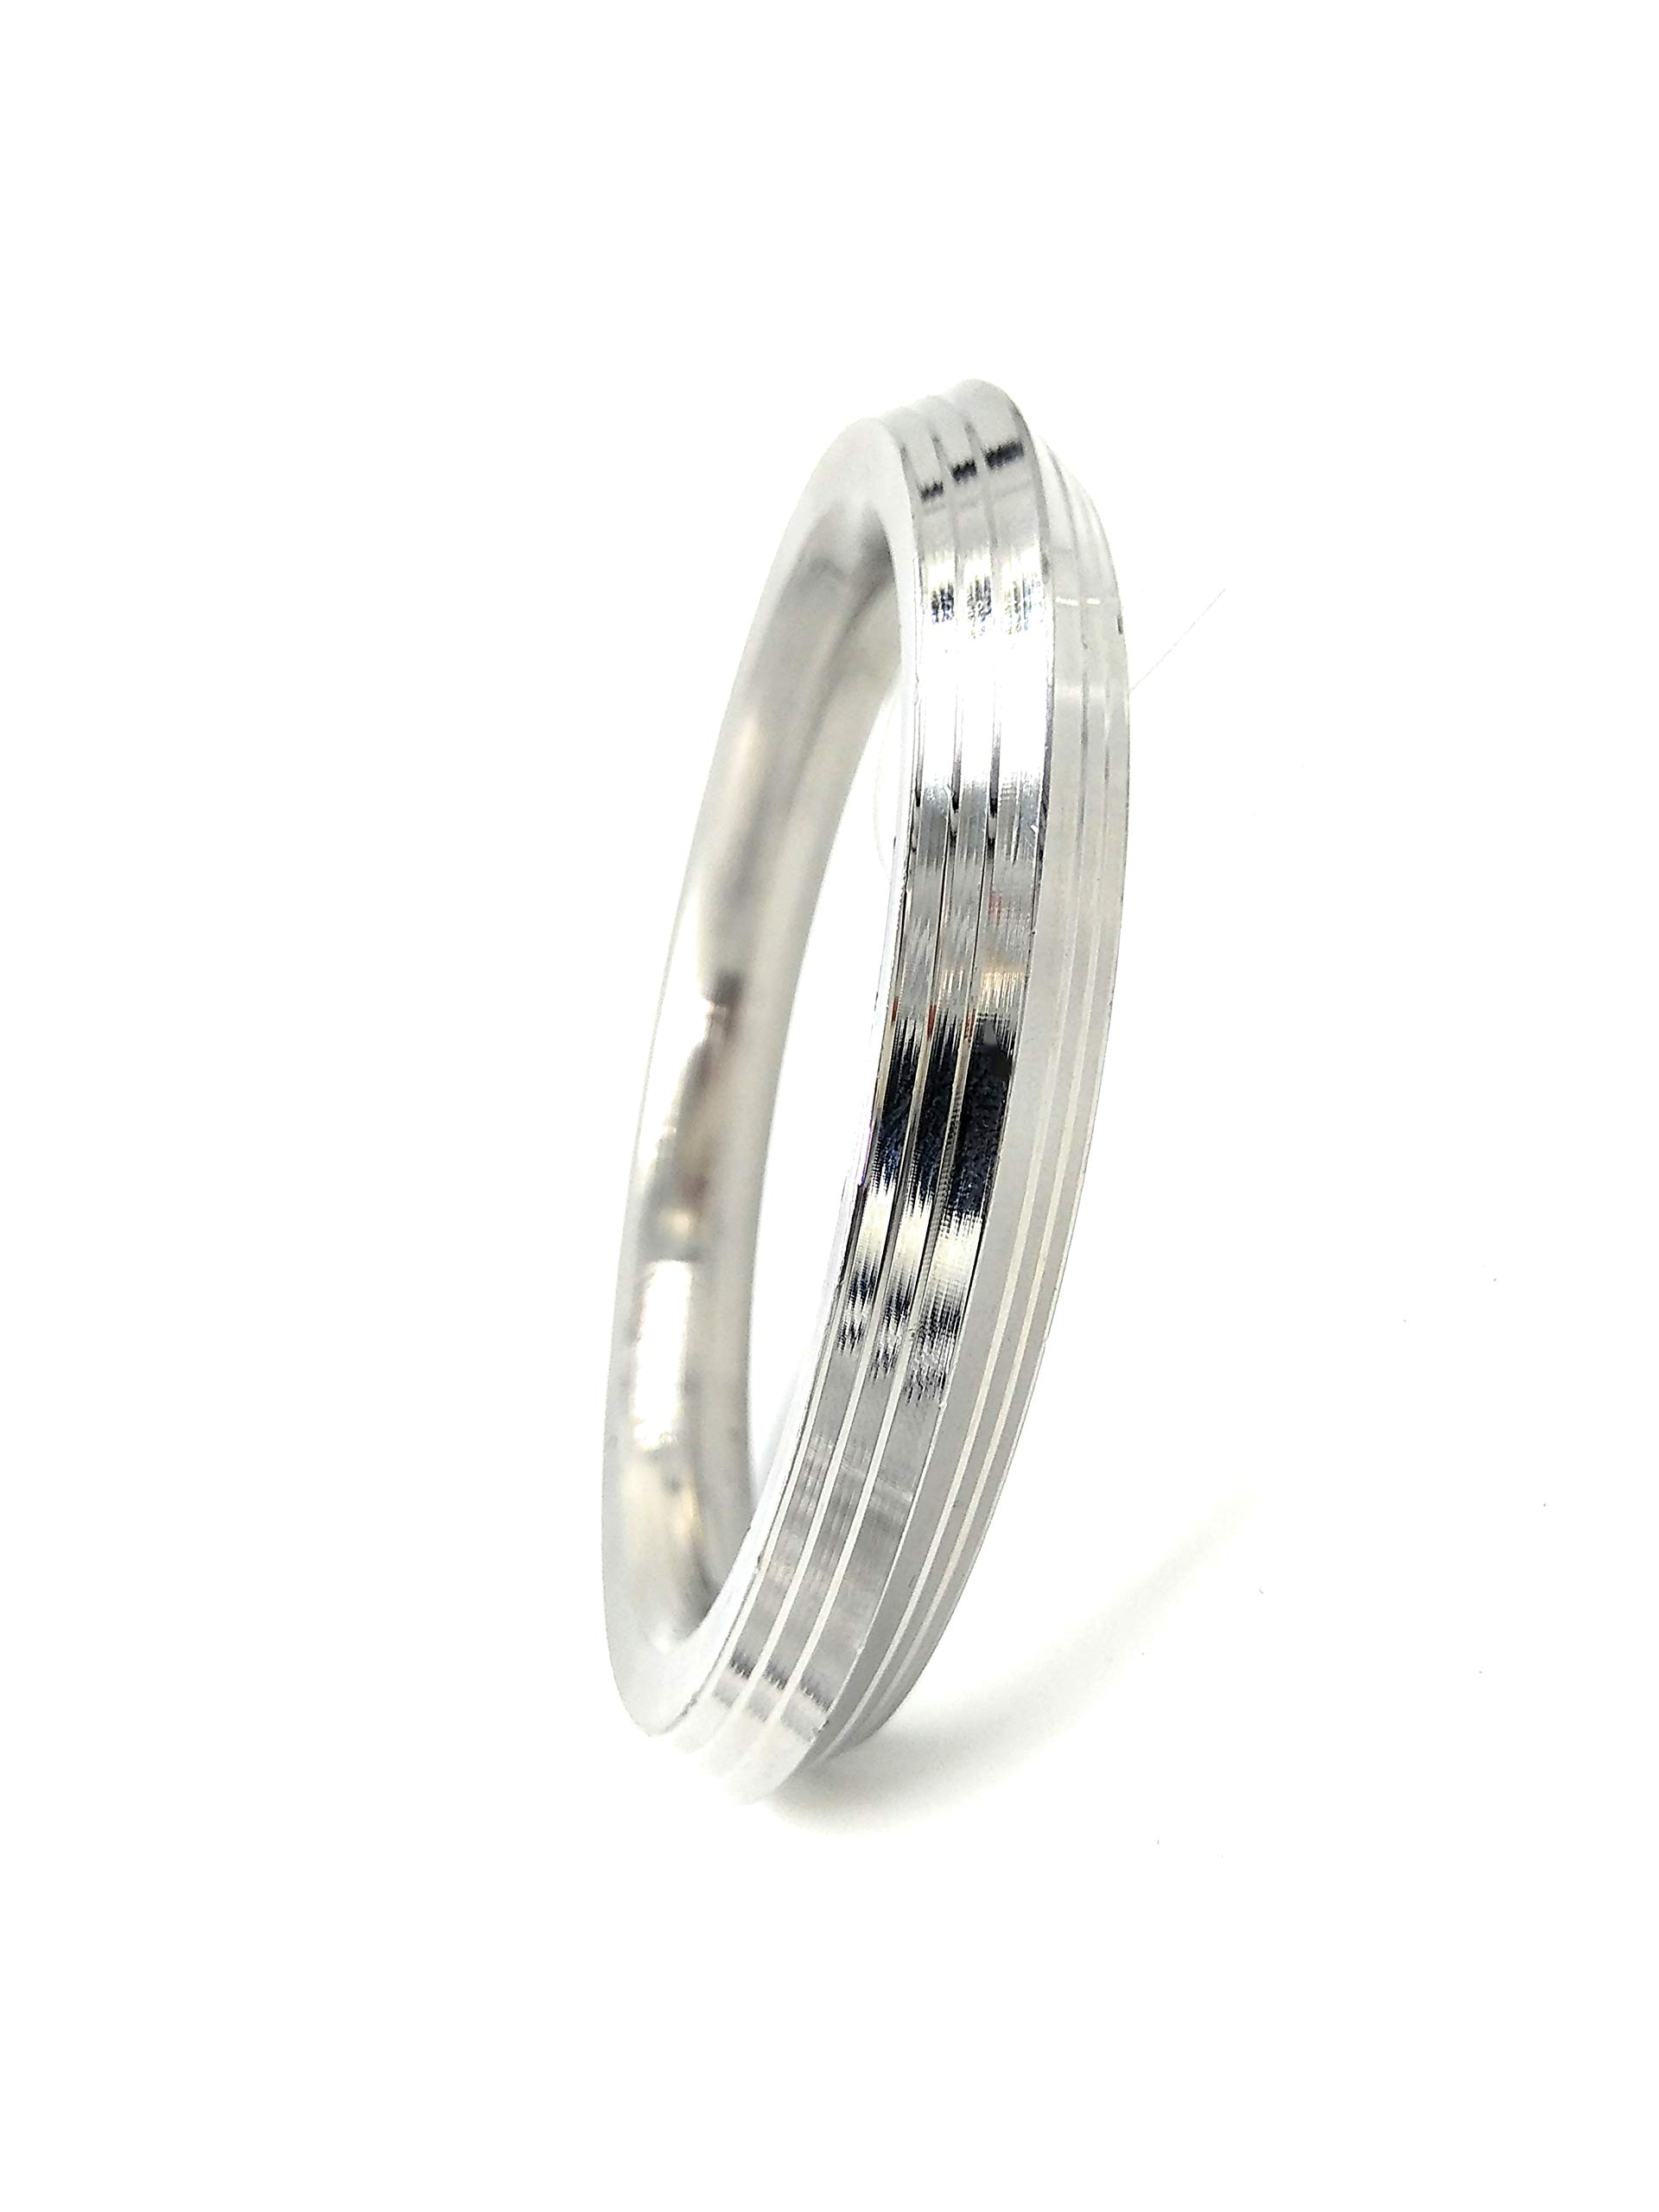 Shinde Exports heavy stylish punjabi Stainless Steel Sikh Kada for men 11mm thick, 160gms in weight product image